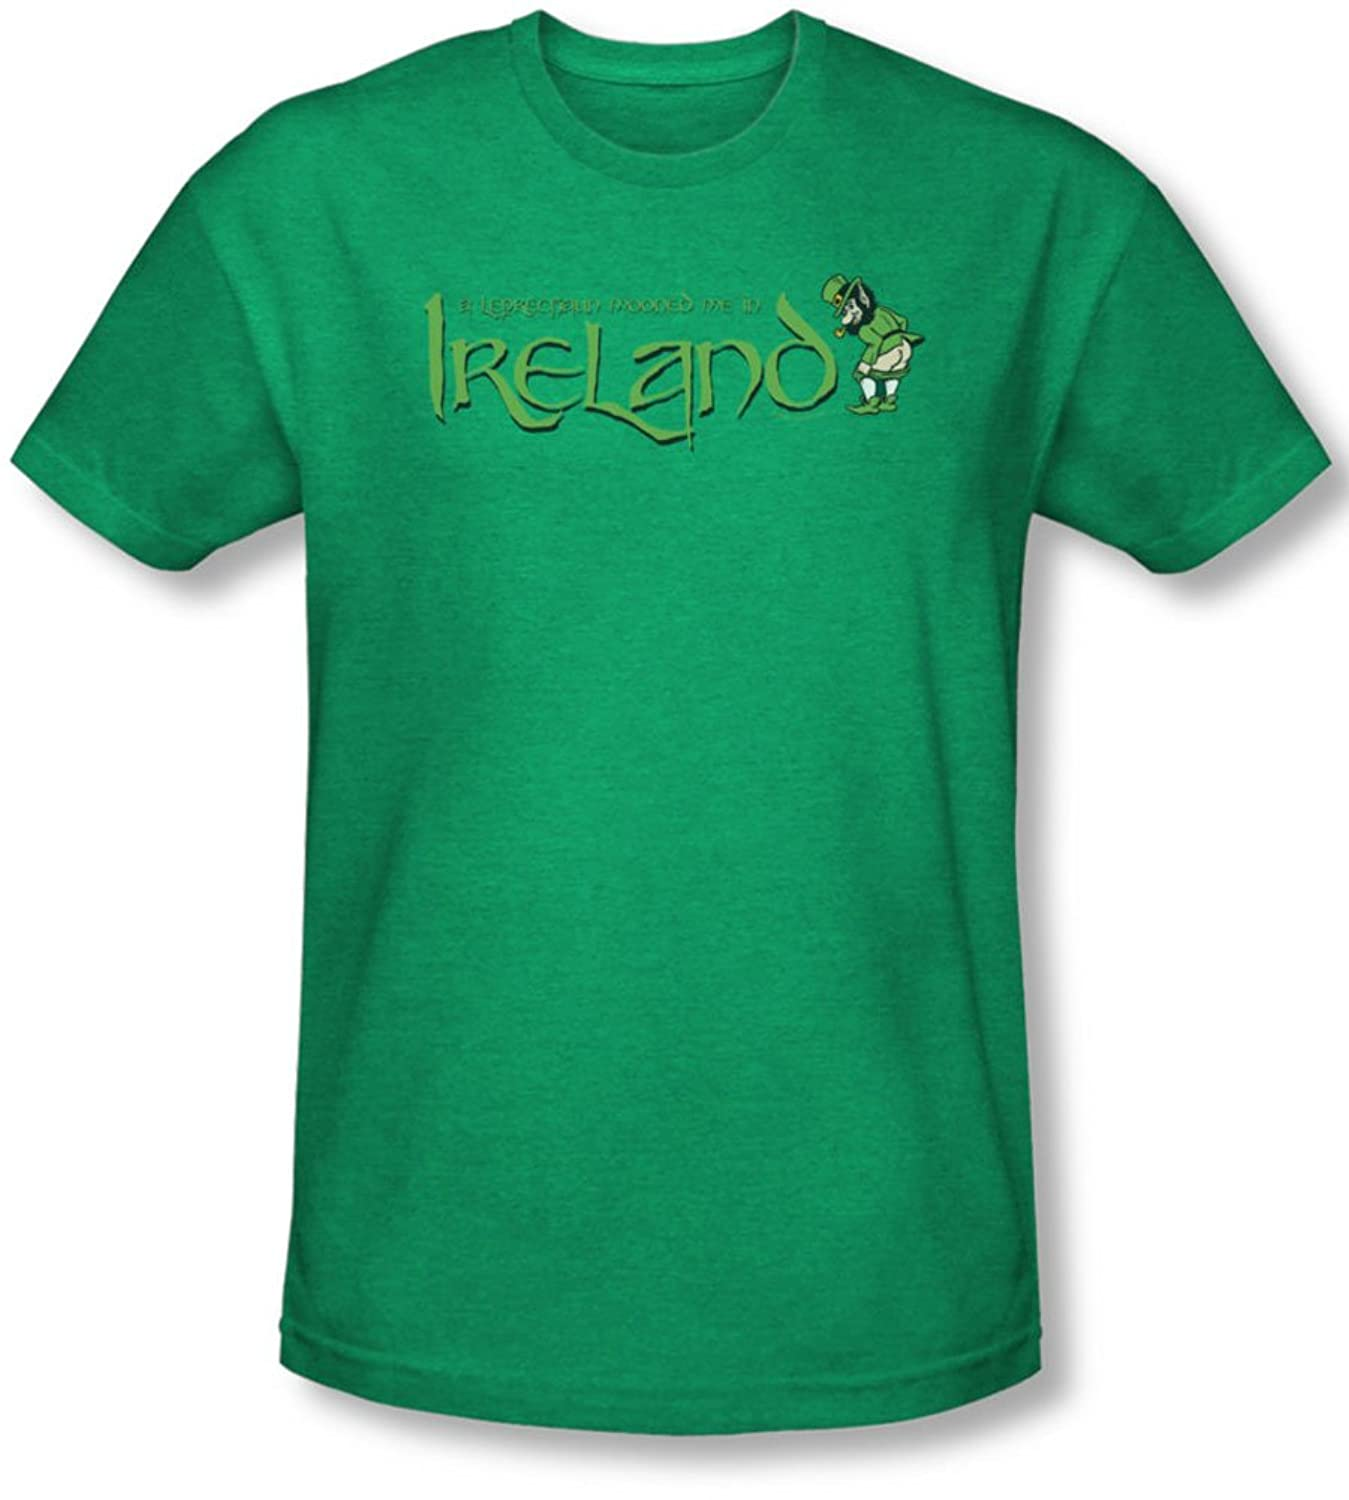 Leprechaun Moon - Mens T-Shirt In Kelly Green, Large, Kelly Green